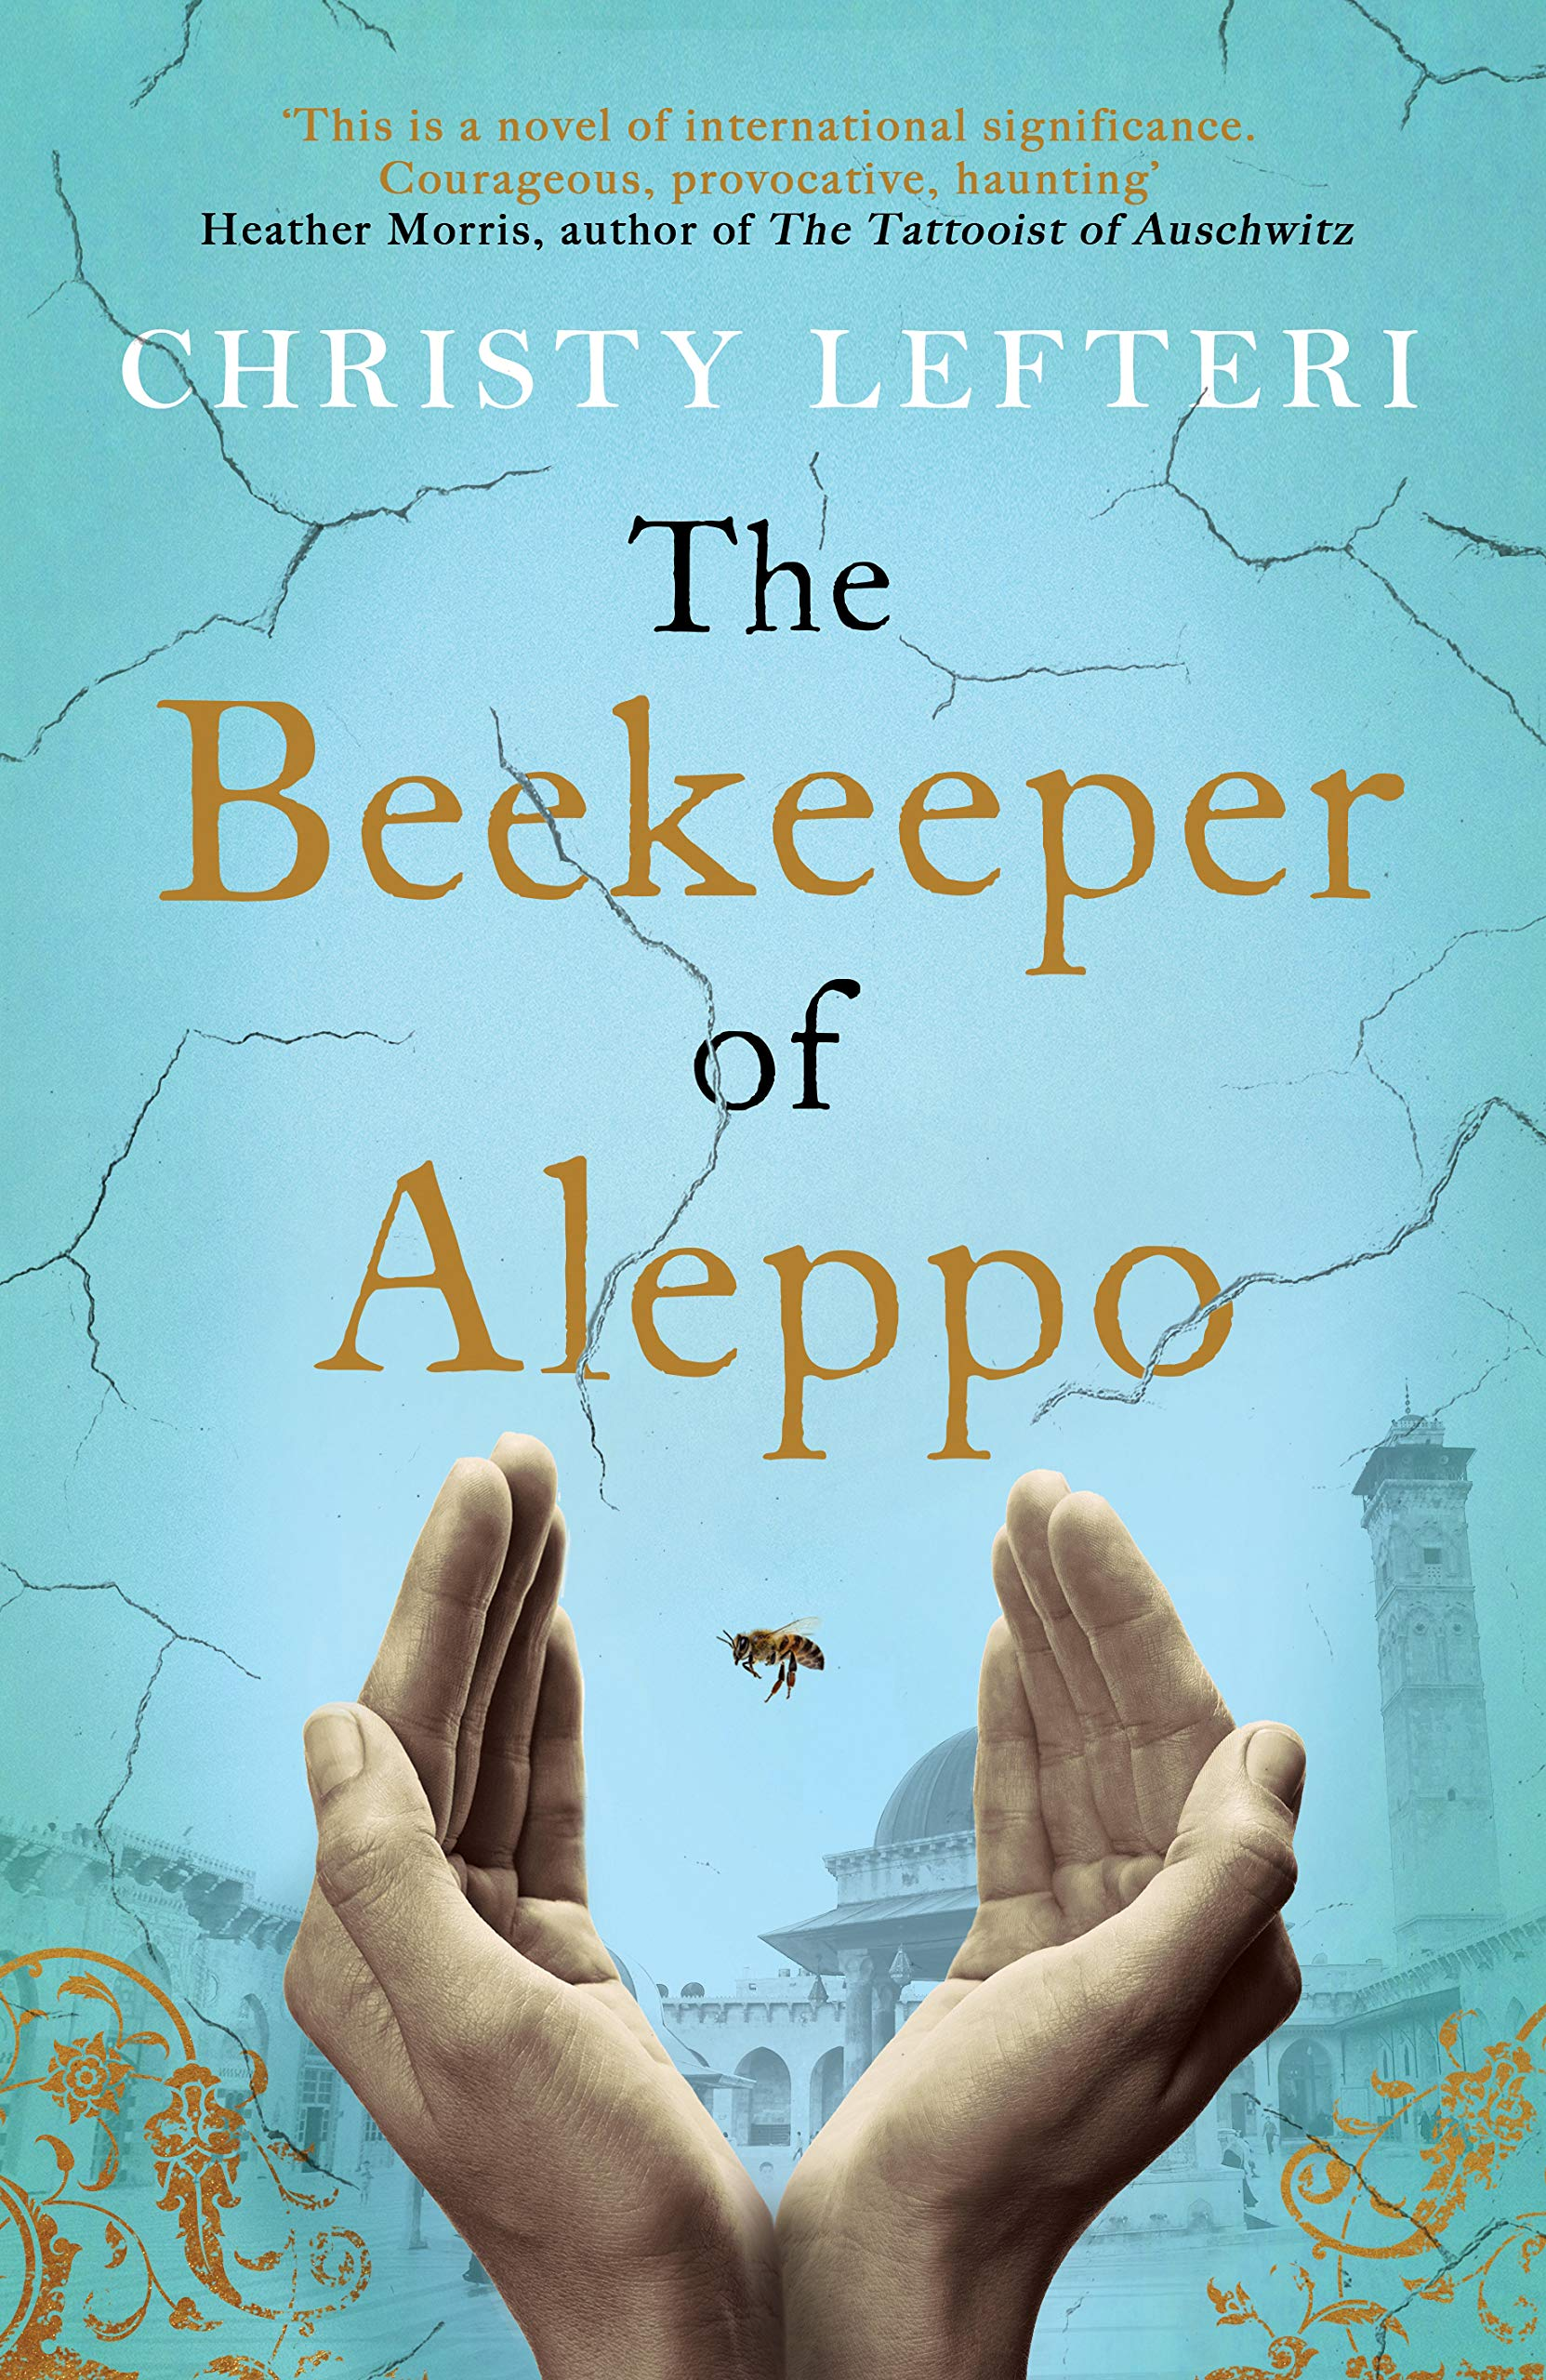 The Beekeeper of Aleppo by Christy Lefteri Published by Bonnier AB ISBN: 9781785768927